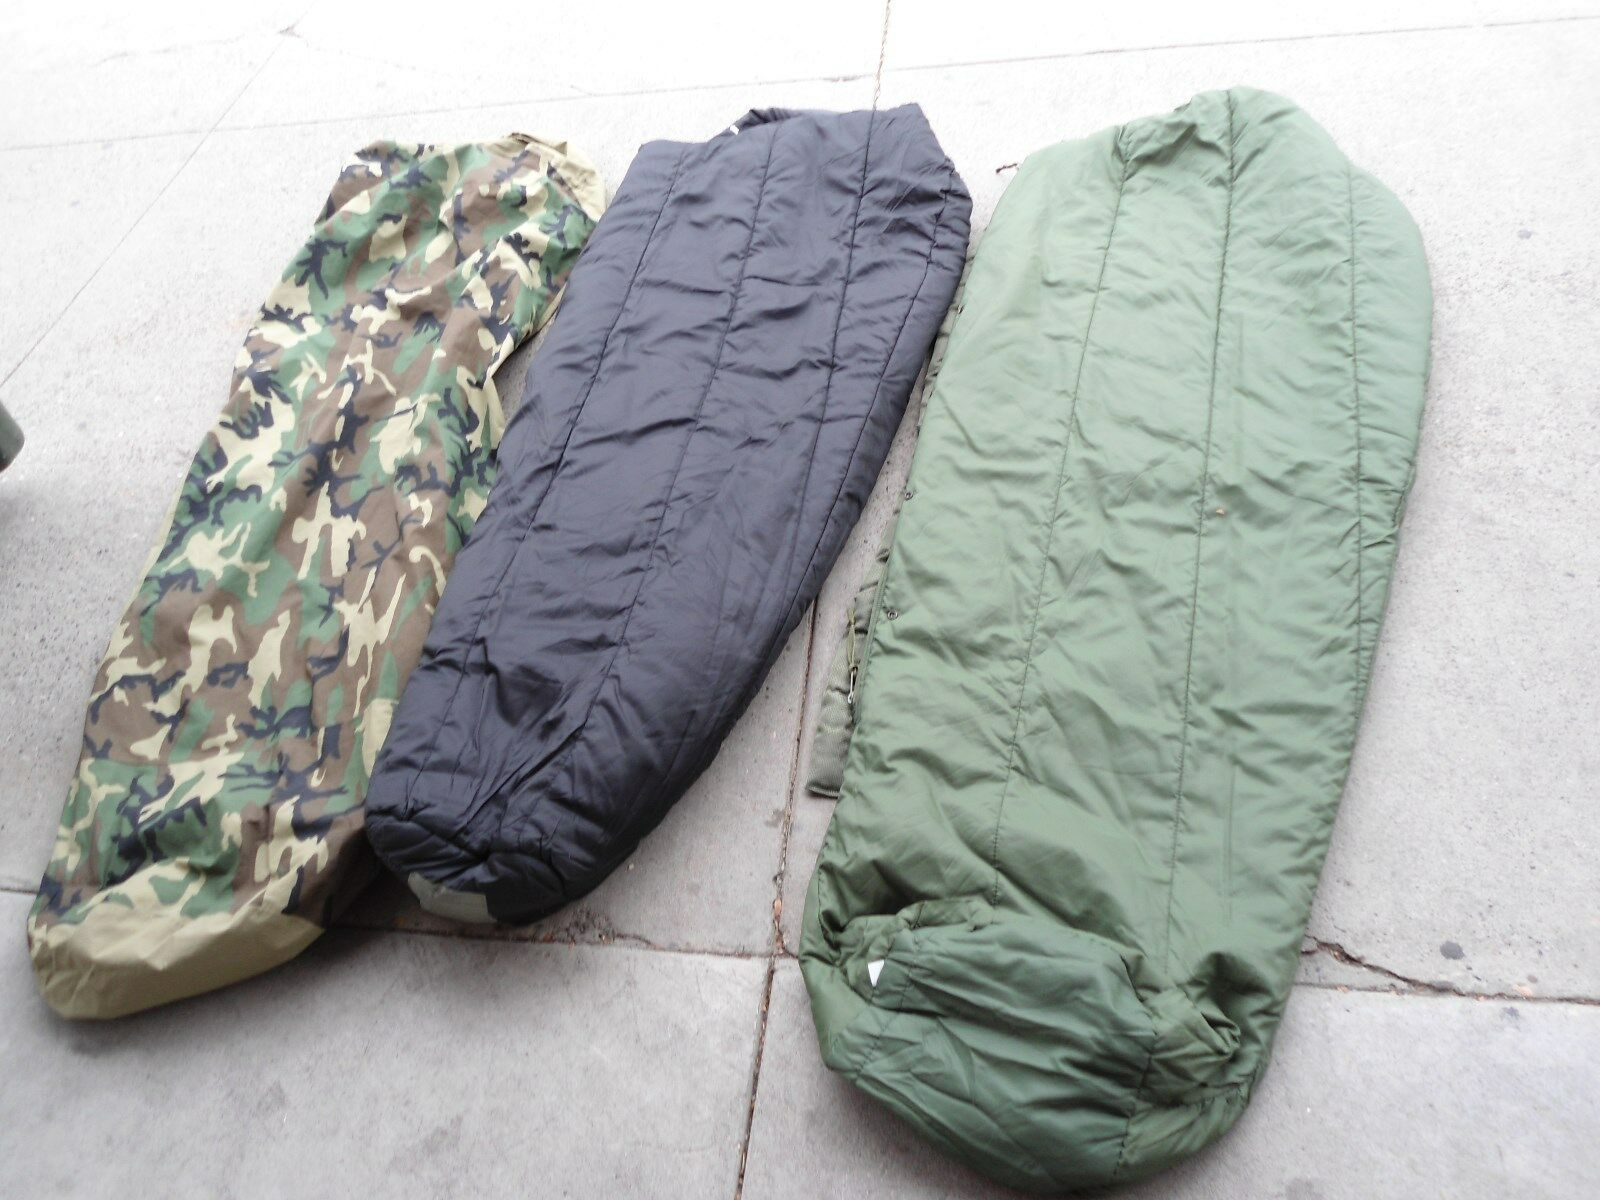 NEW 4 PIECE US MILITARY  MODULAR SLEEP SYSTEM WITH BIVY COVER  offering store